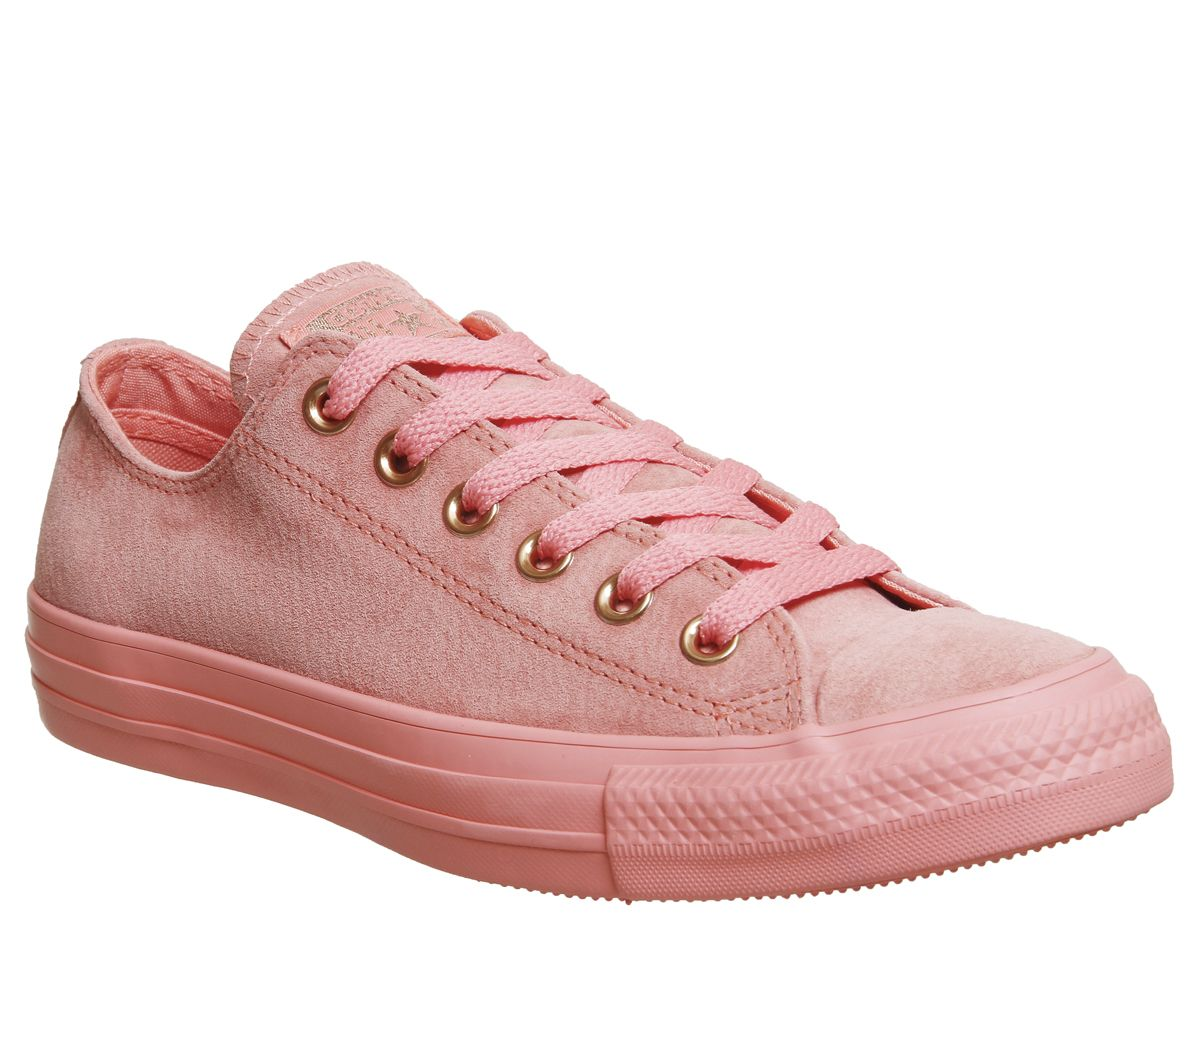 f430686f8b3b Converse All Star Low Leather Hot Punch Mono Exclusive - Hers trainers